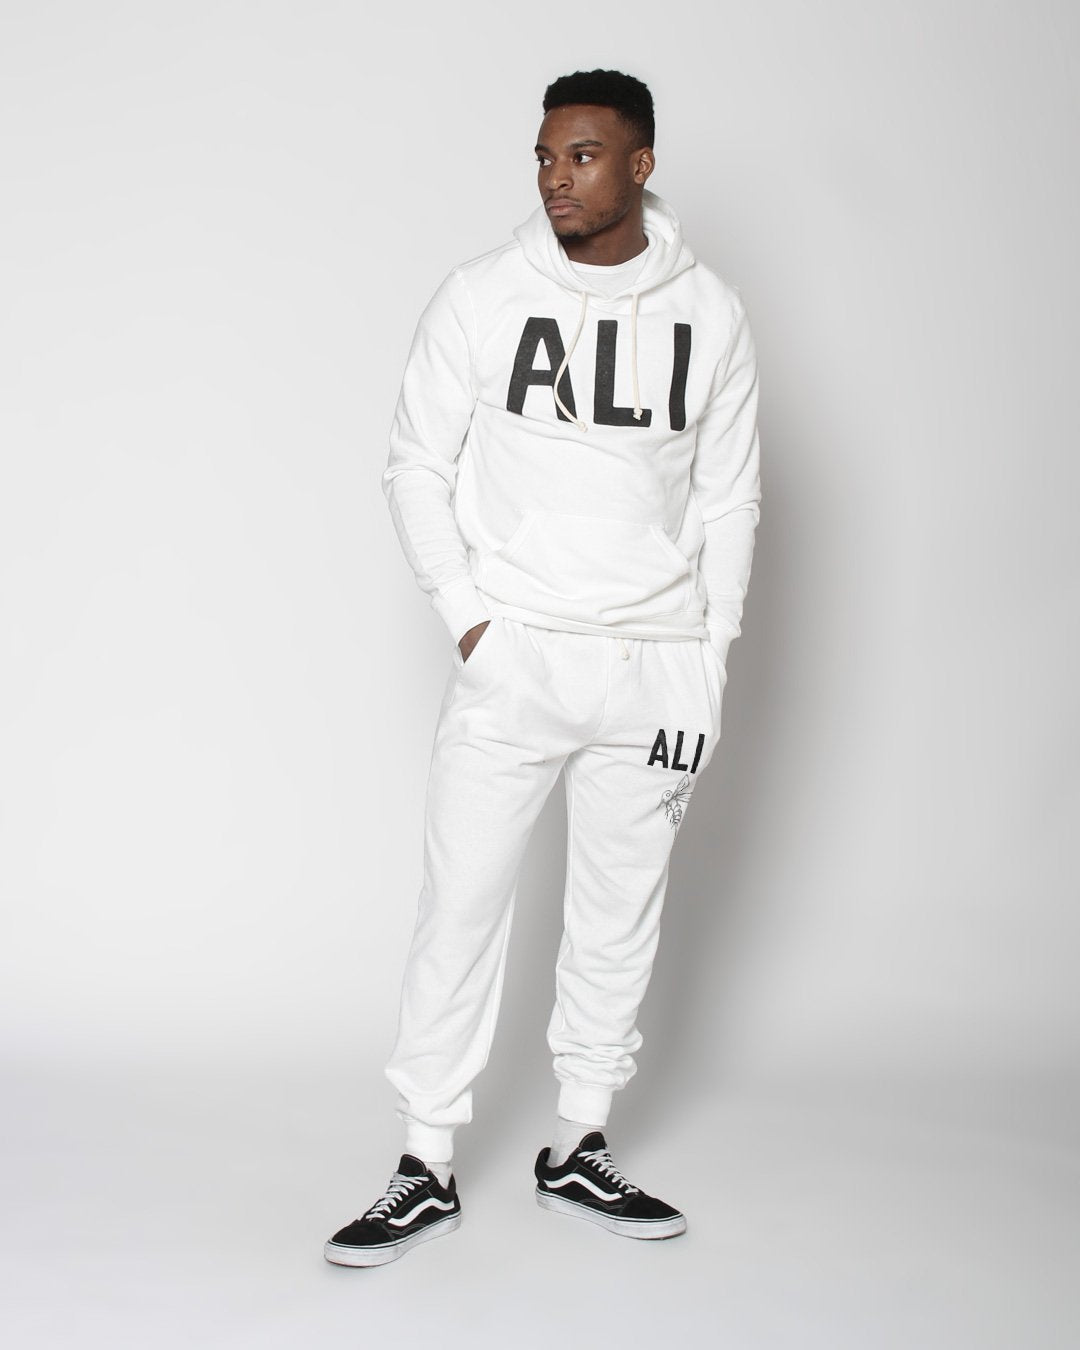 Ali Will vs. Skill Pullover Hoody - Roots of Inc dba Roots of Fight